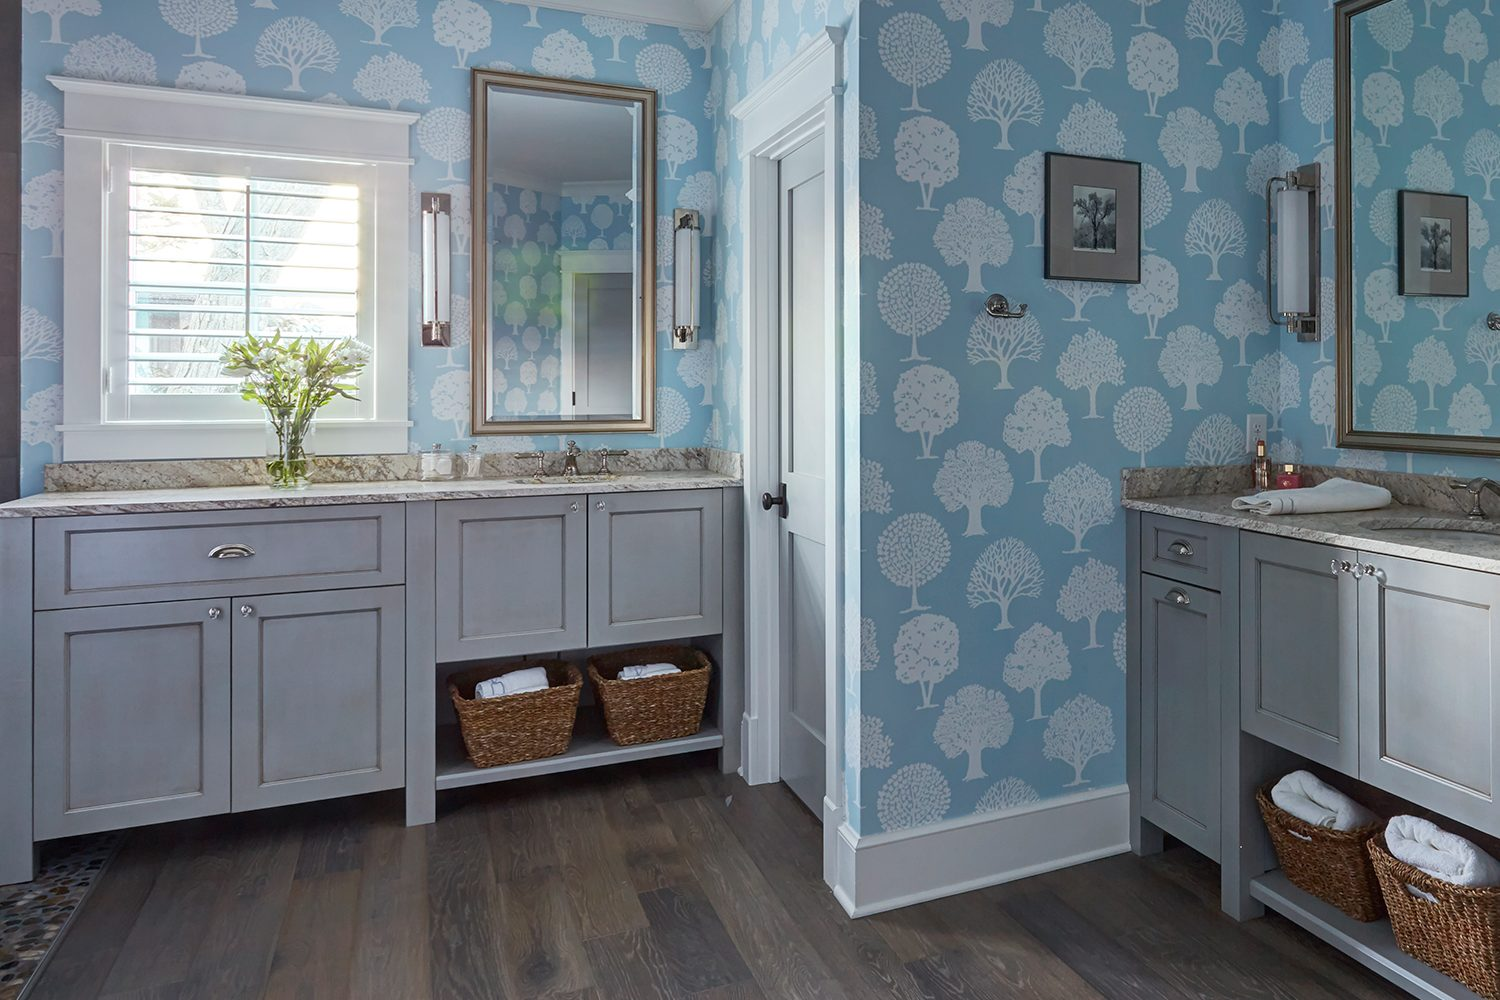 Painted master bathroom cabinets in Estate Gray with Walnut glaze